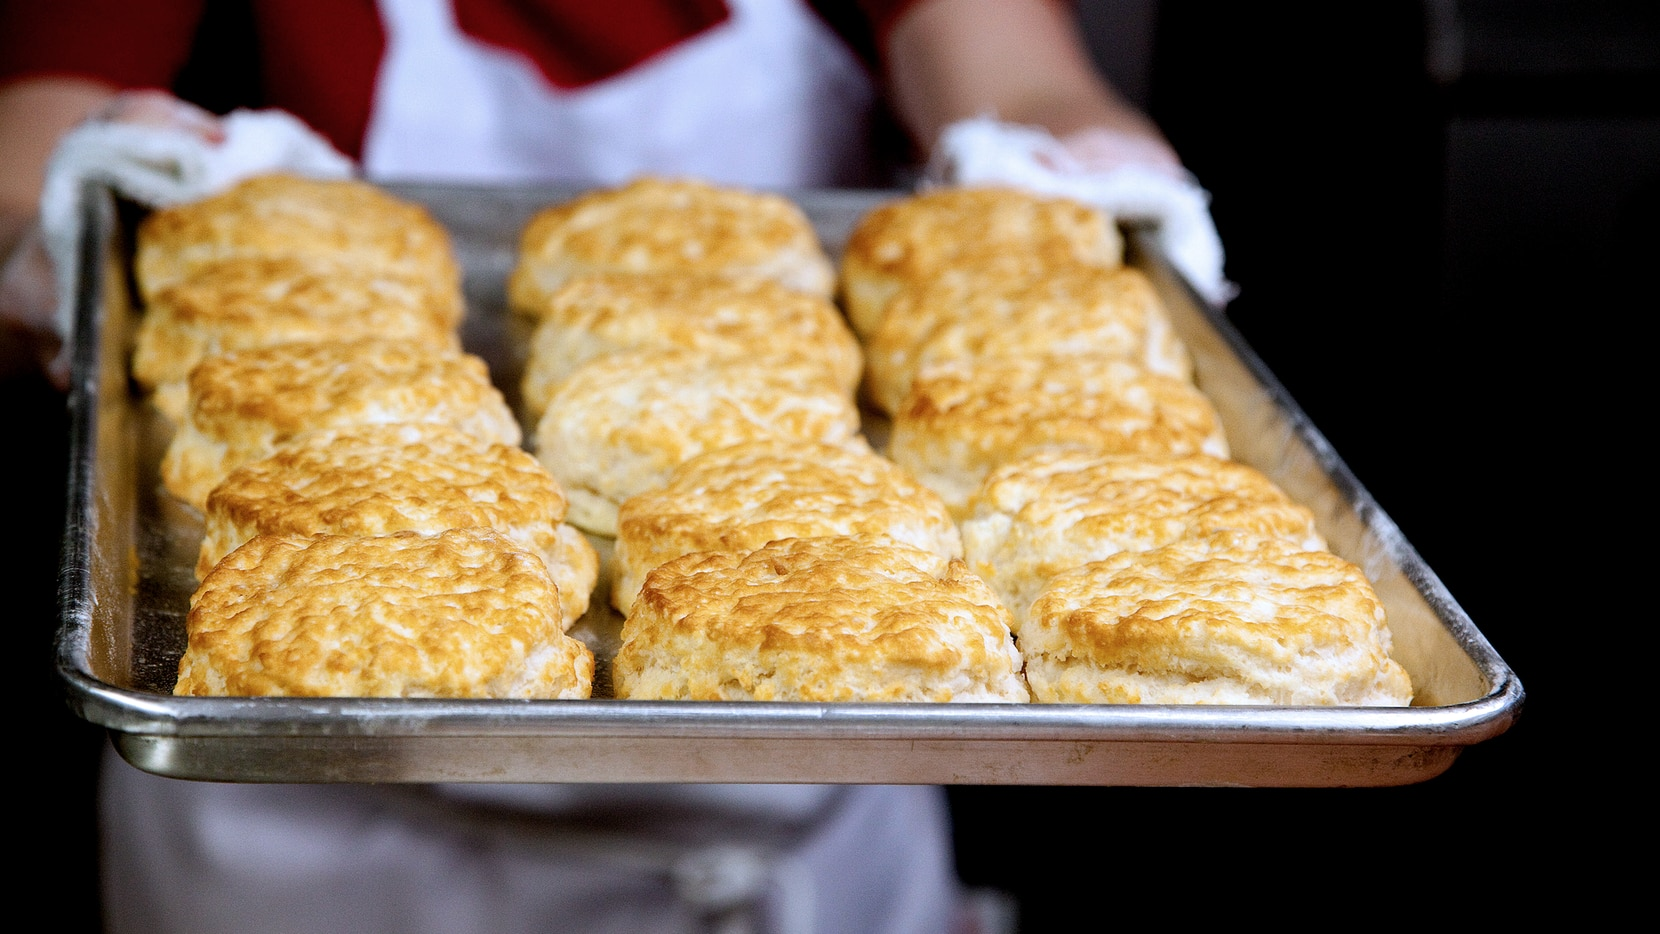 Bojangles is opening in Texas? You bet your biscuit. The first restaurants in Dallas-Fort Worth will be in Garland, Richardson and Mesquite.